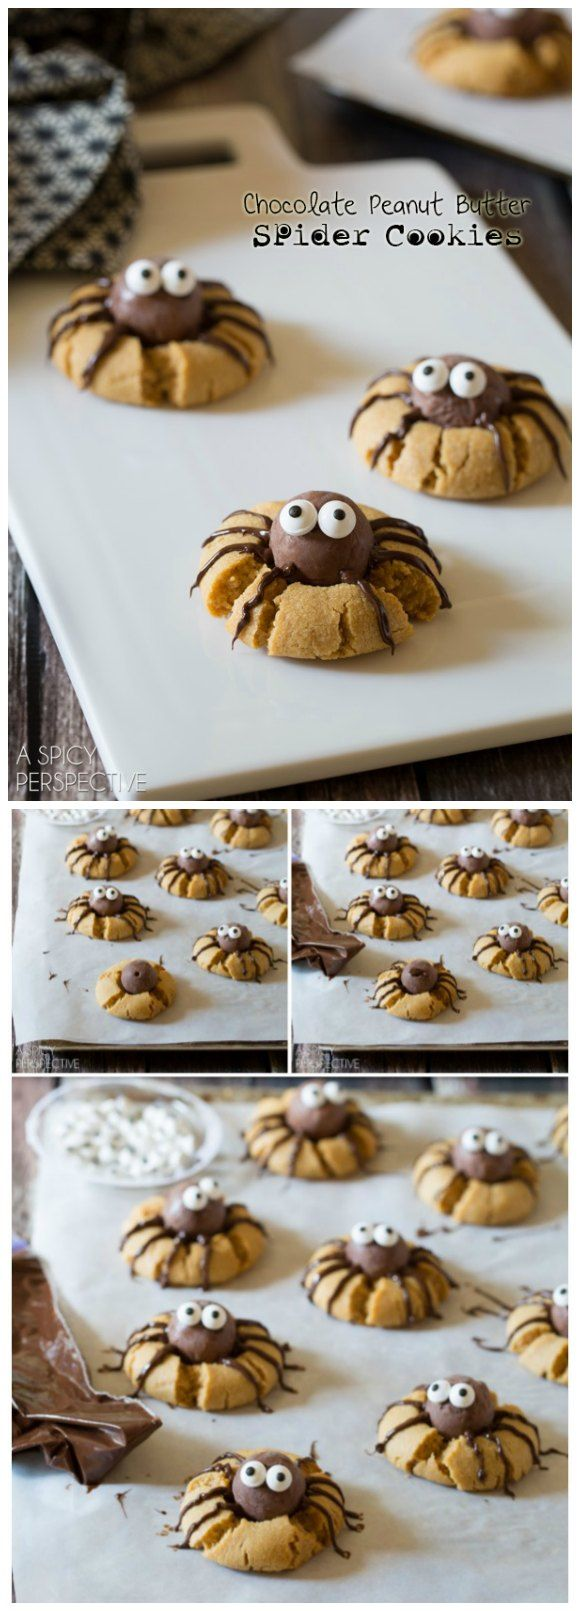 bosca old leather trifold wallet Chocolate Peanut Butter Spider Cookies that are creepy and delightful These spider cookies are my first Halloween offering this year so I wanted to make sure to give you a recipe that was frightfully delicious